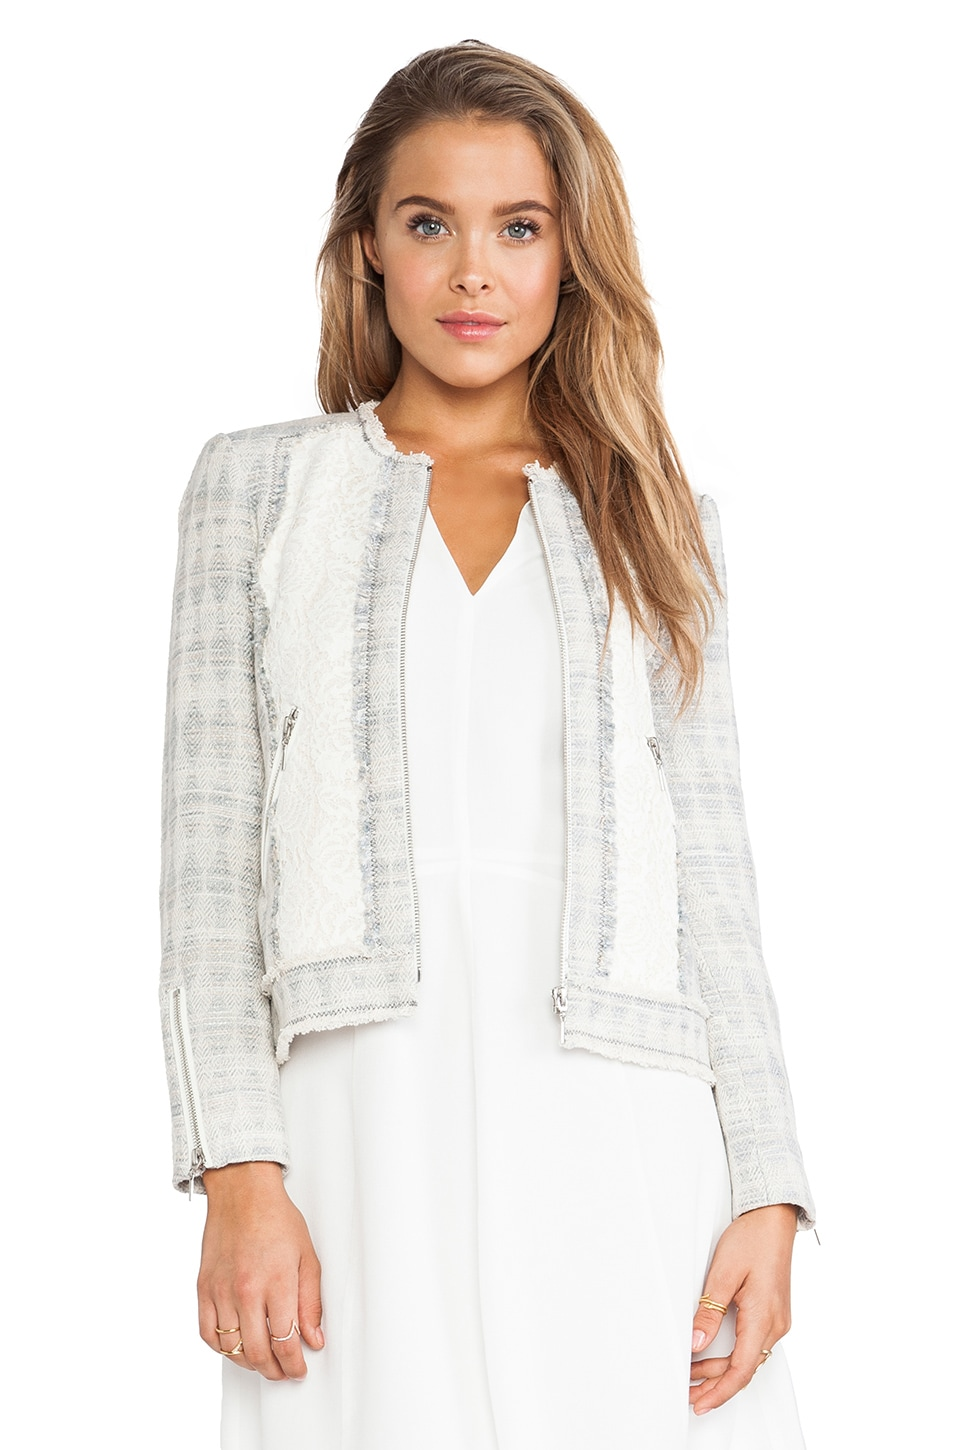 Rebecca Taylor Mixed Tweed & Lace Jacket in Cream Mix